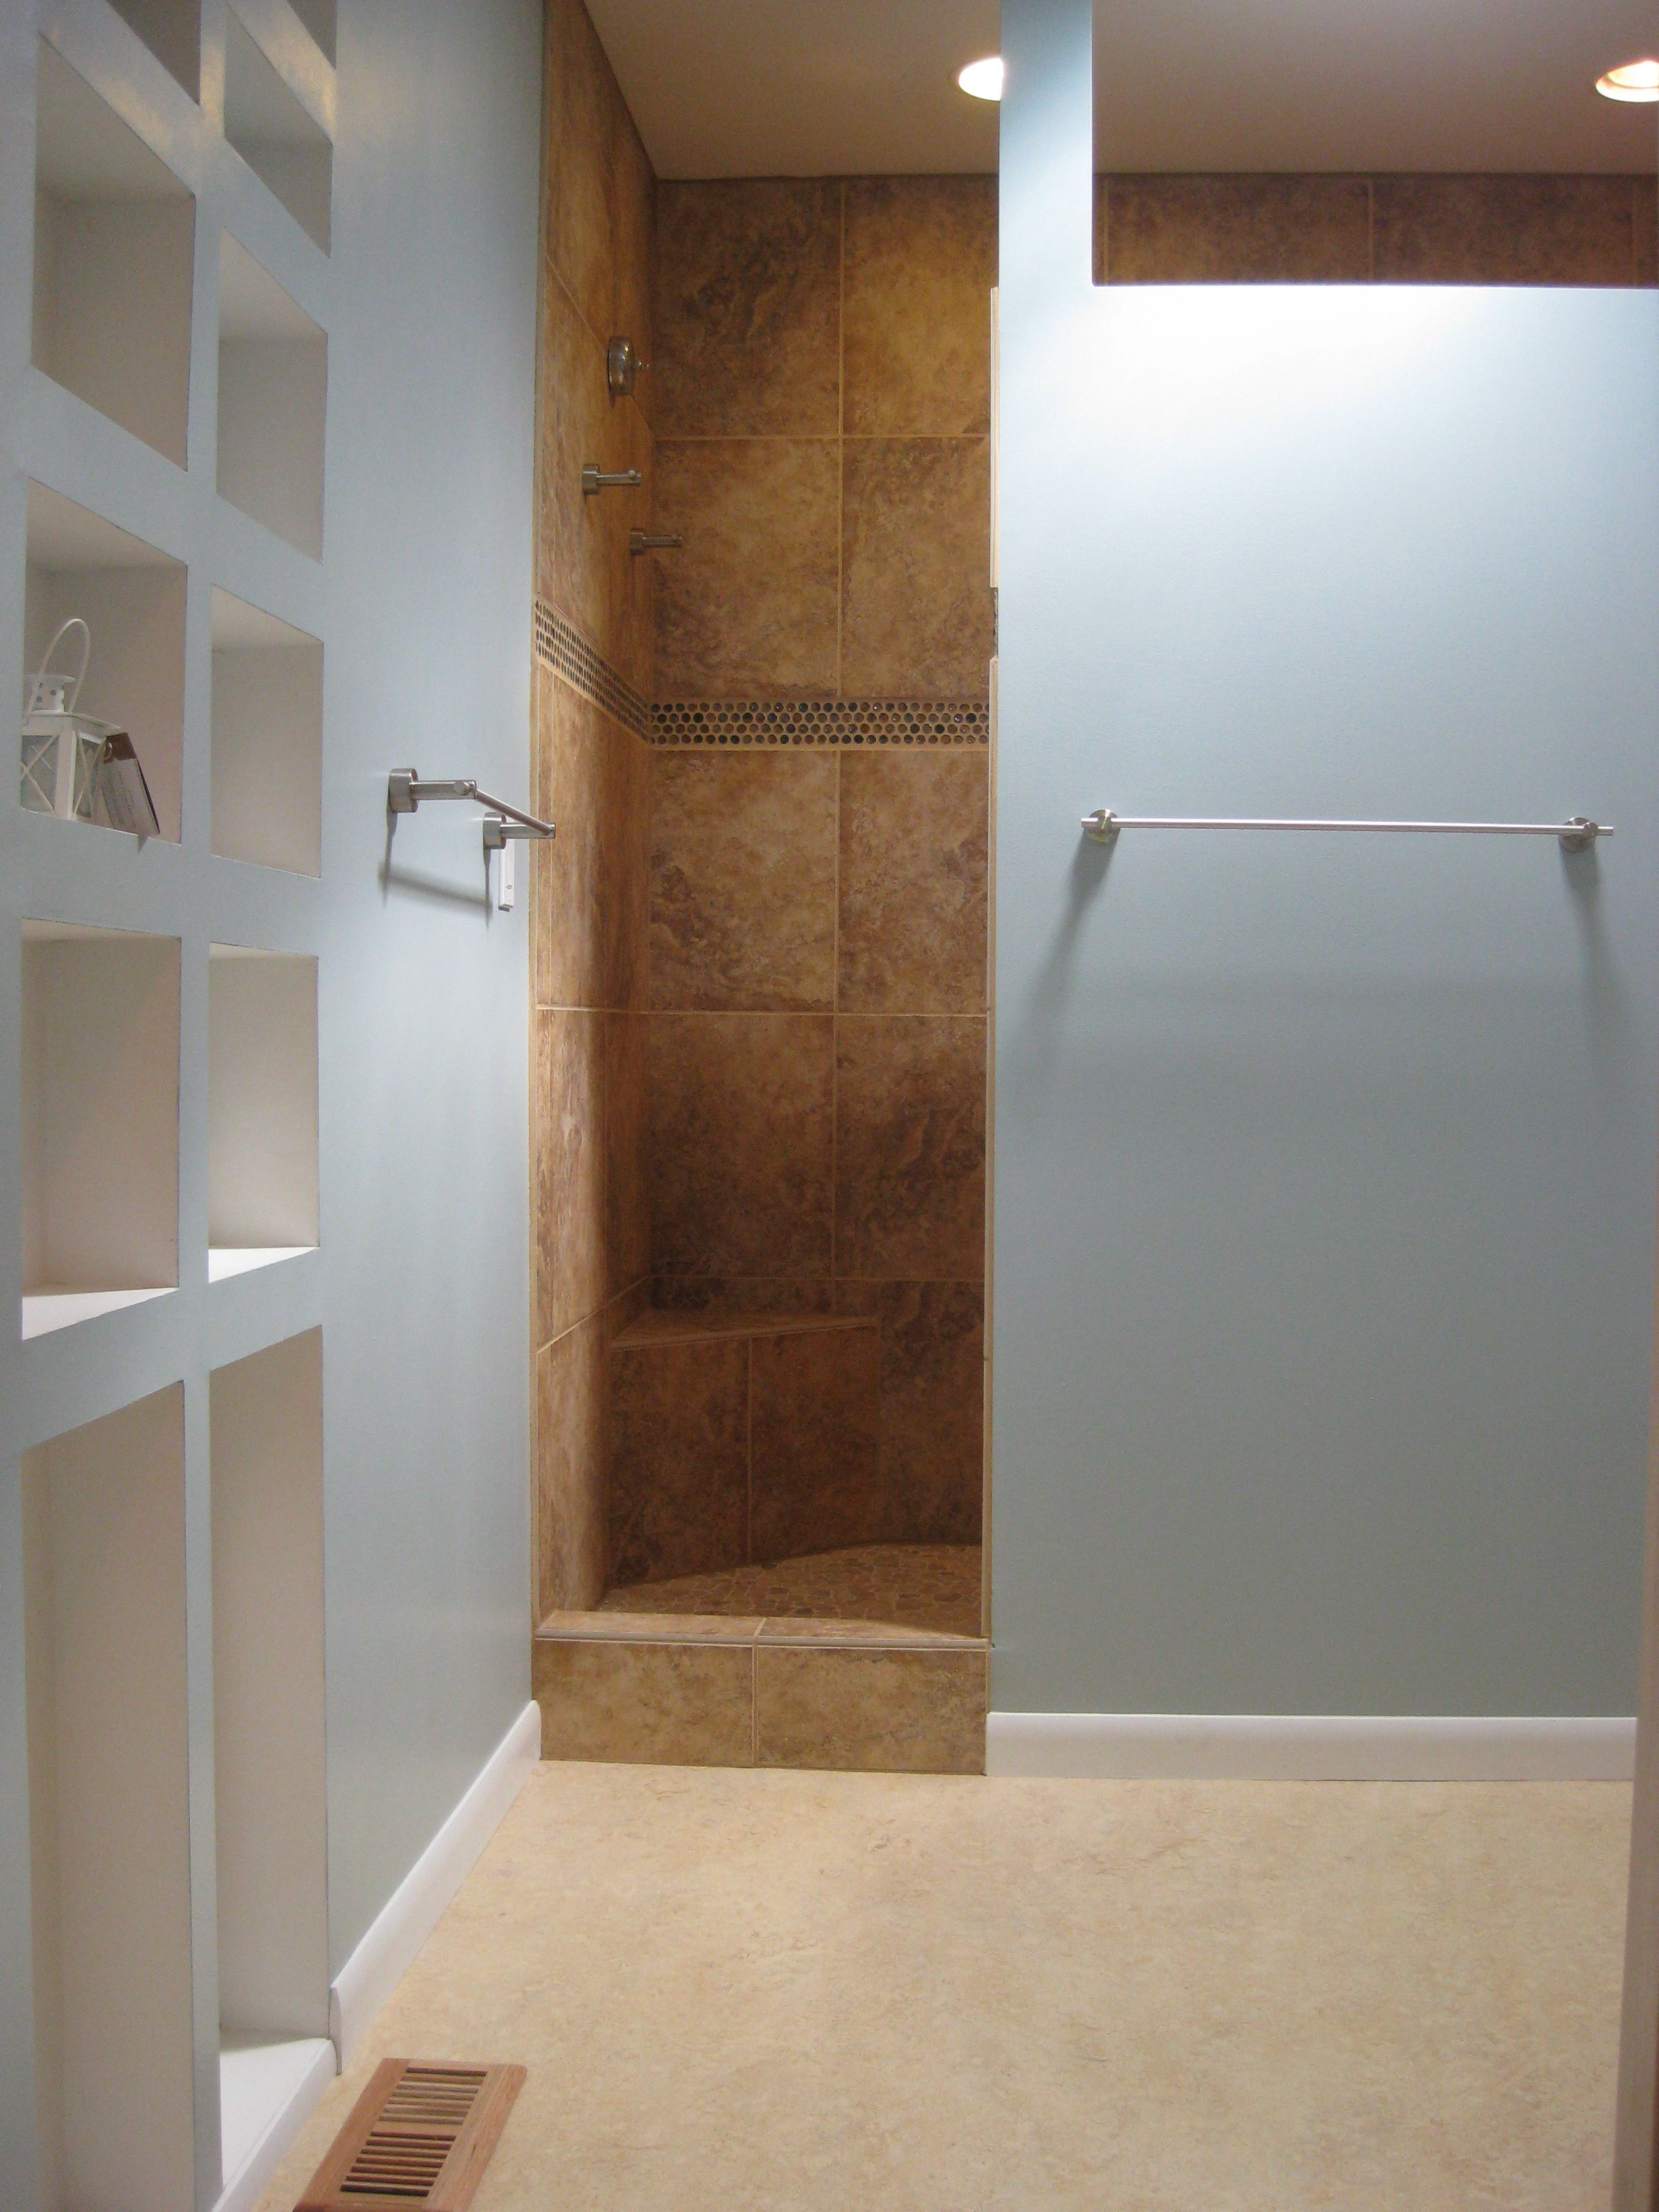 Master Bathroom No Door a general idea for adding the wall | for greed | pinterest